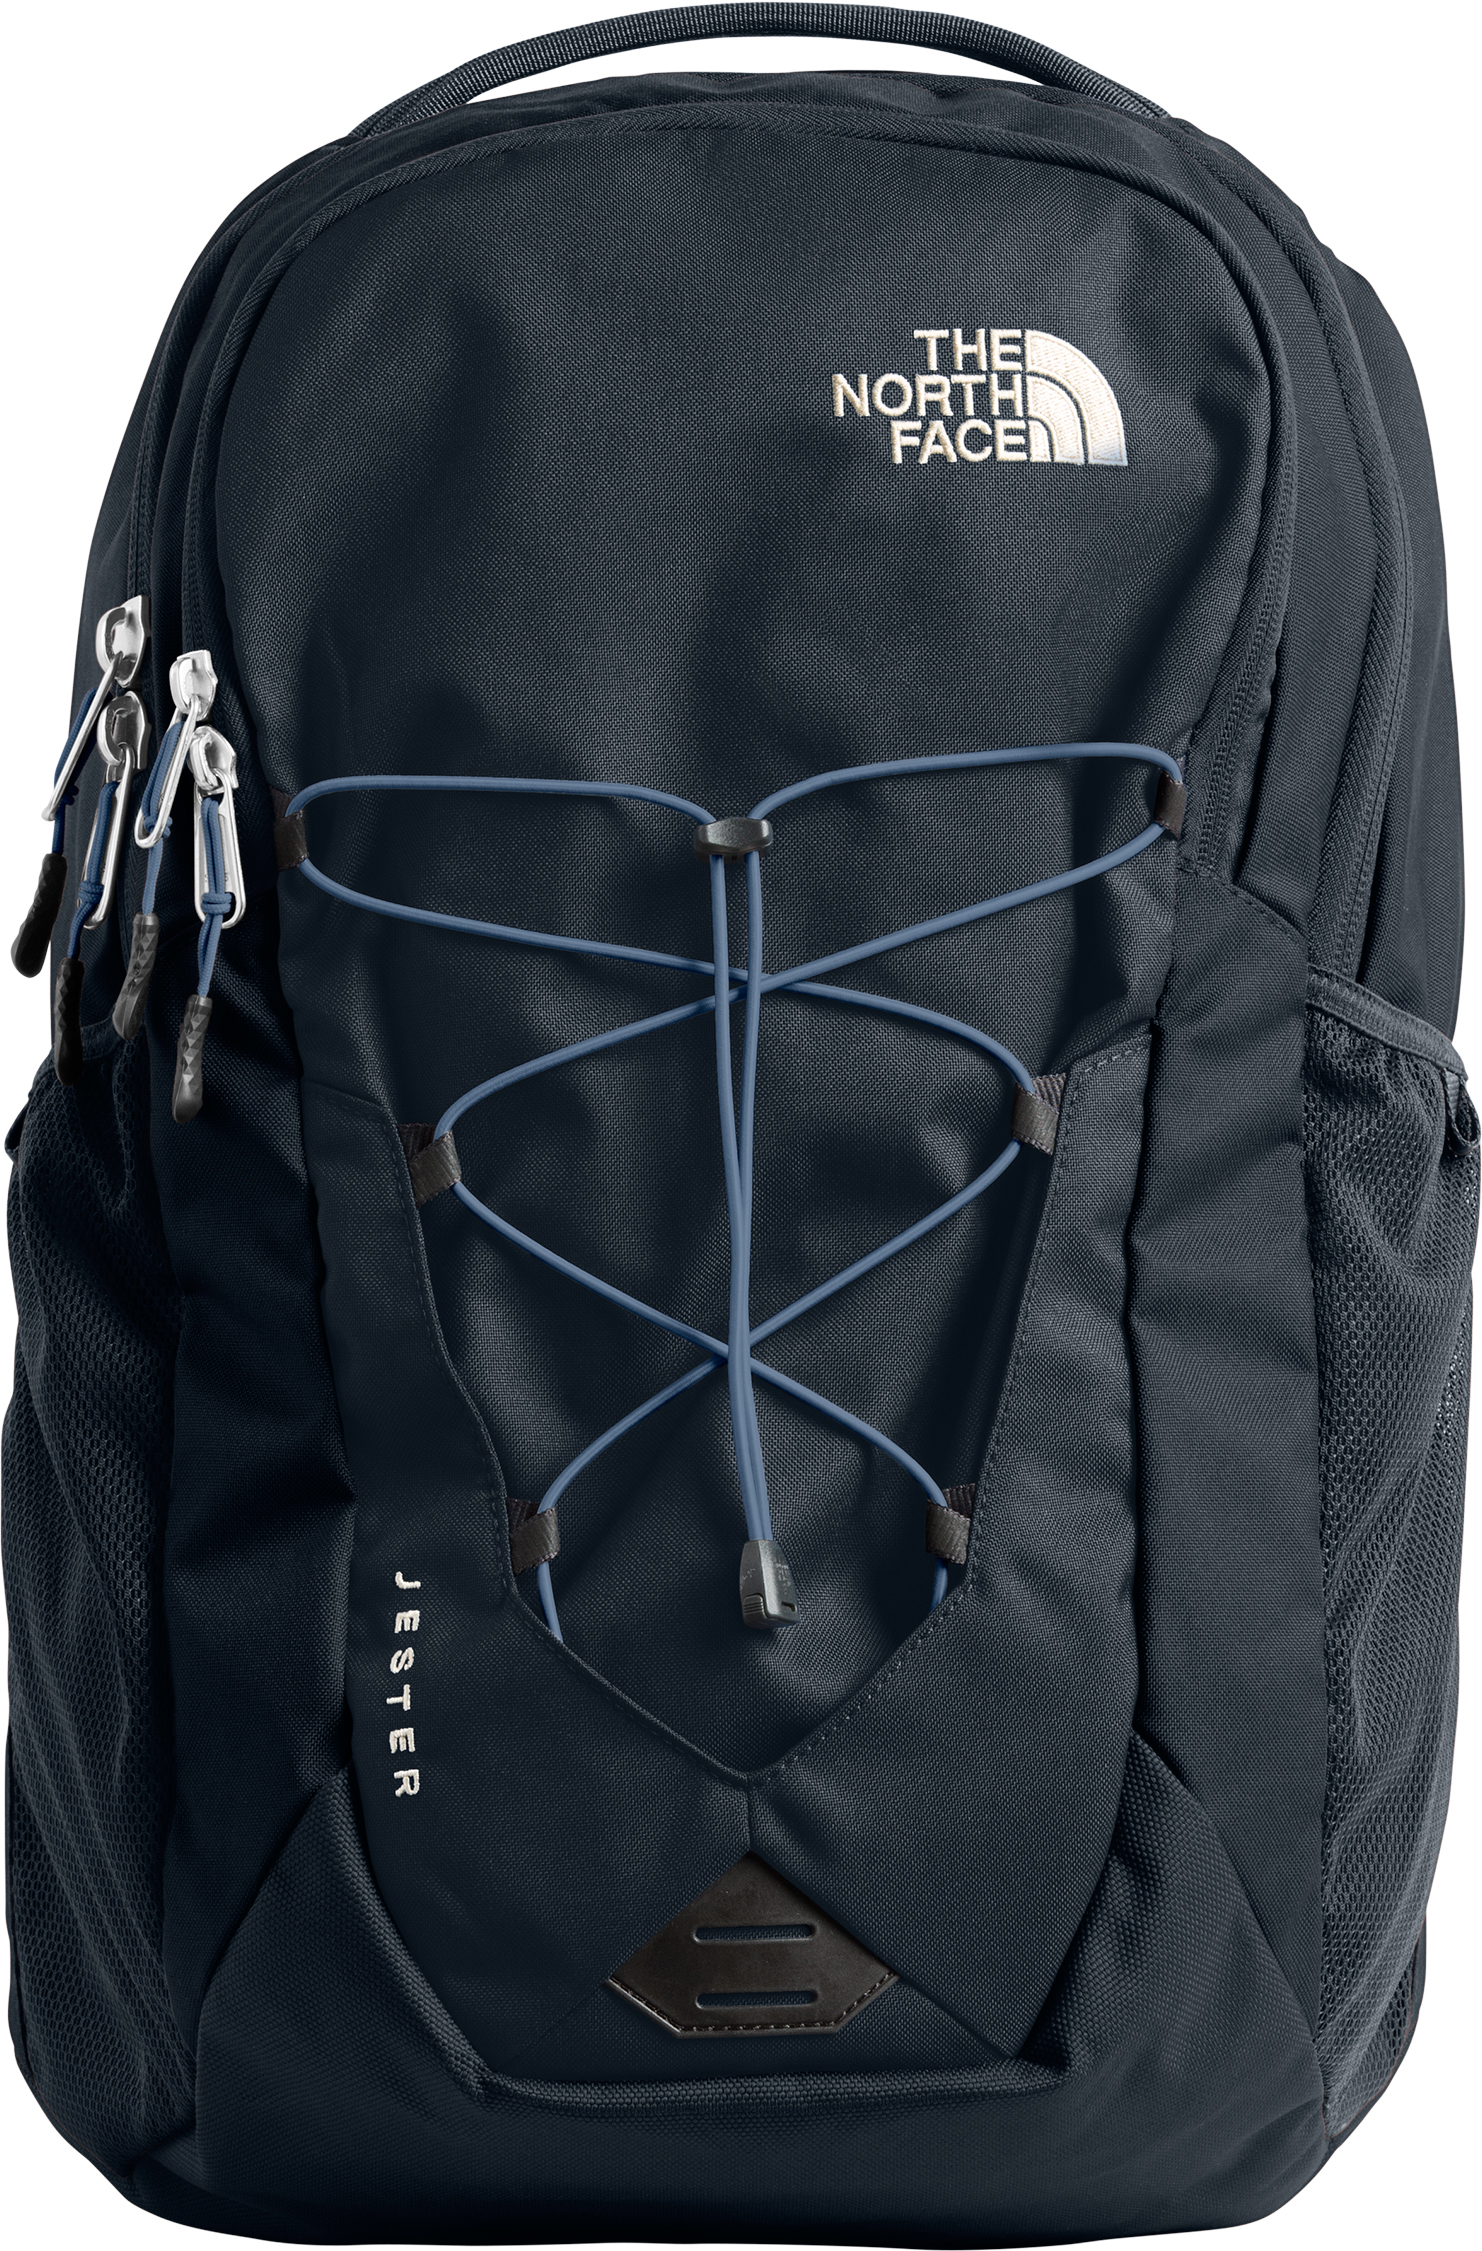 639094726 The North Face Packs and bags | MEC